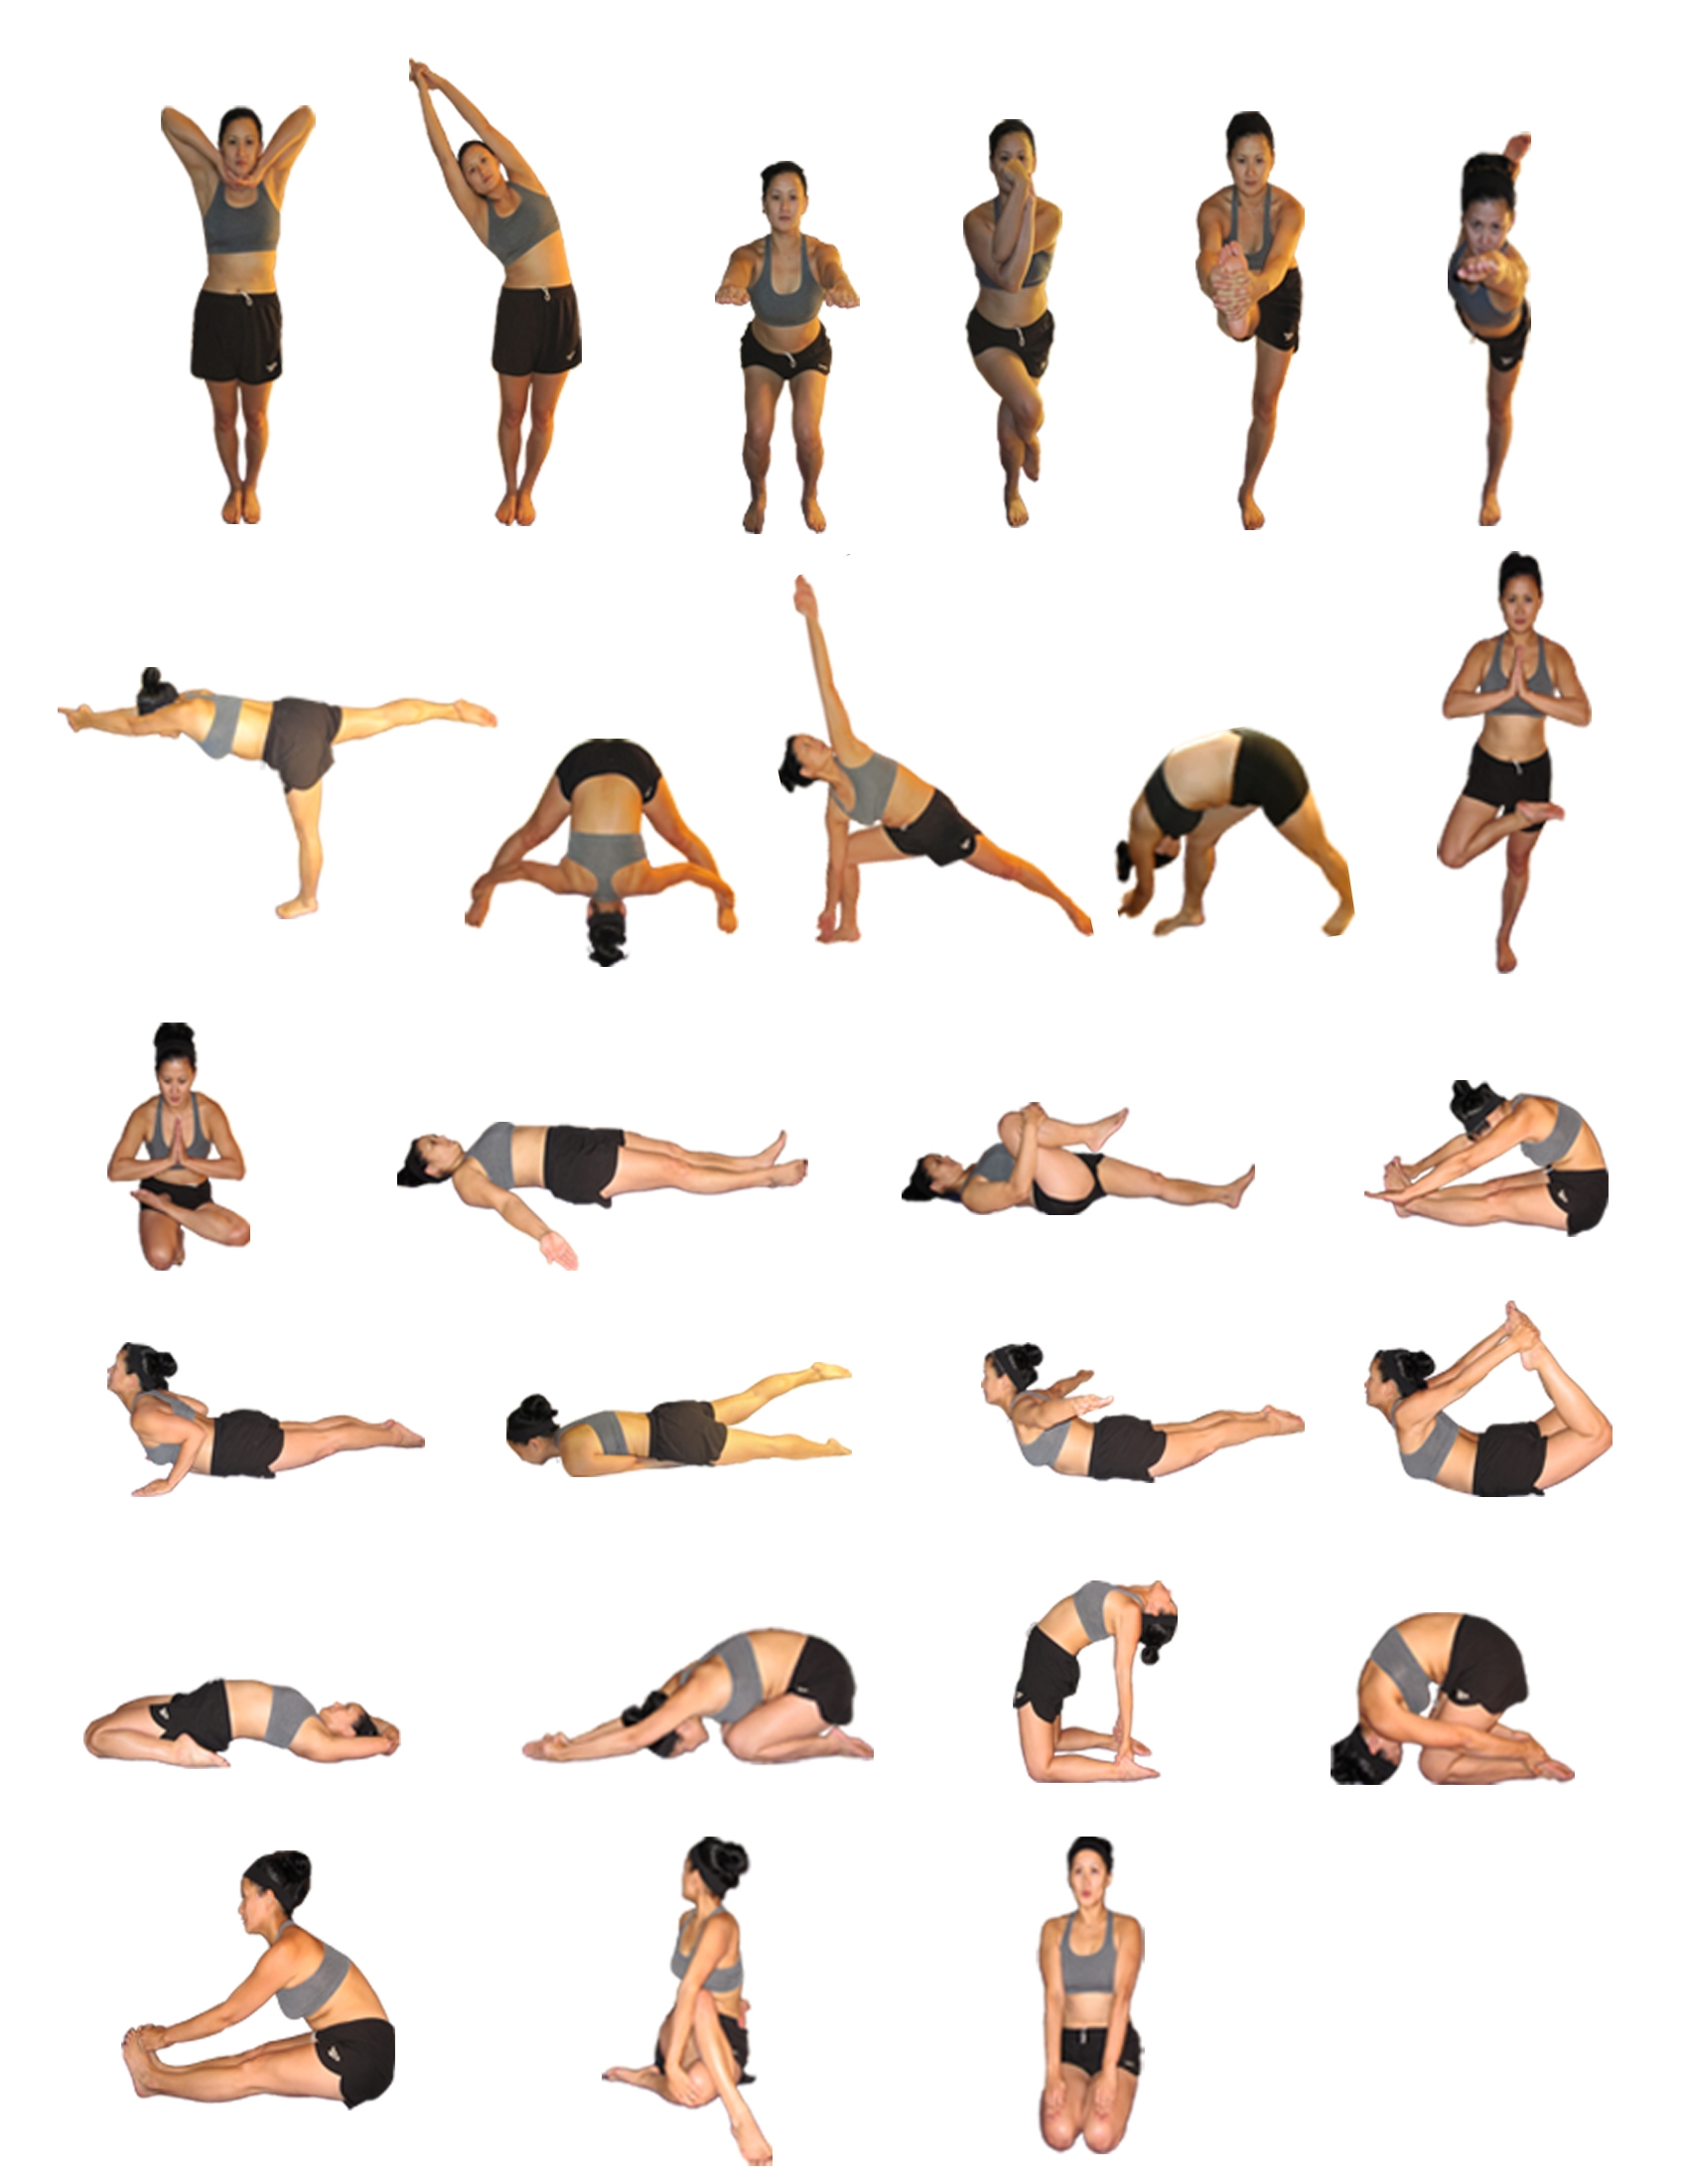 yoga poses picture 7Bcm9ss4